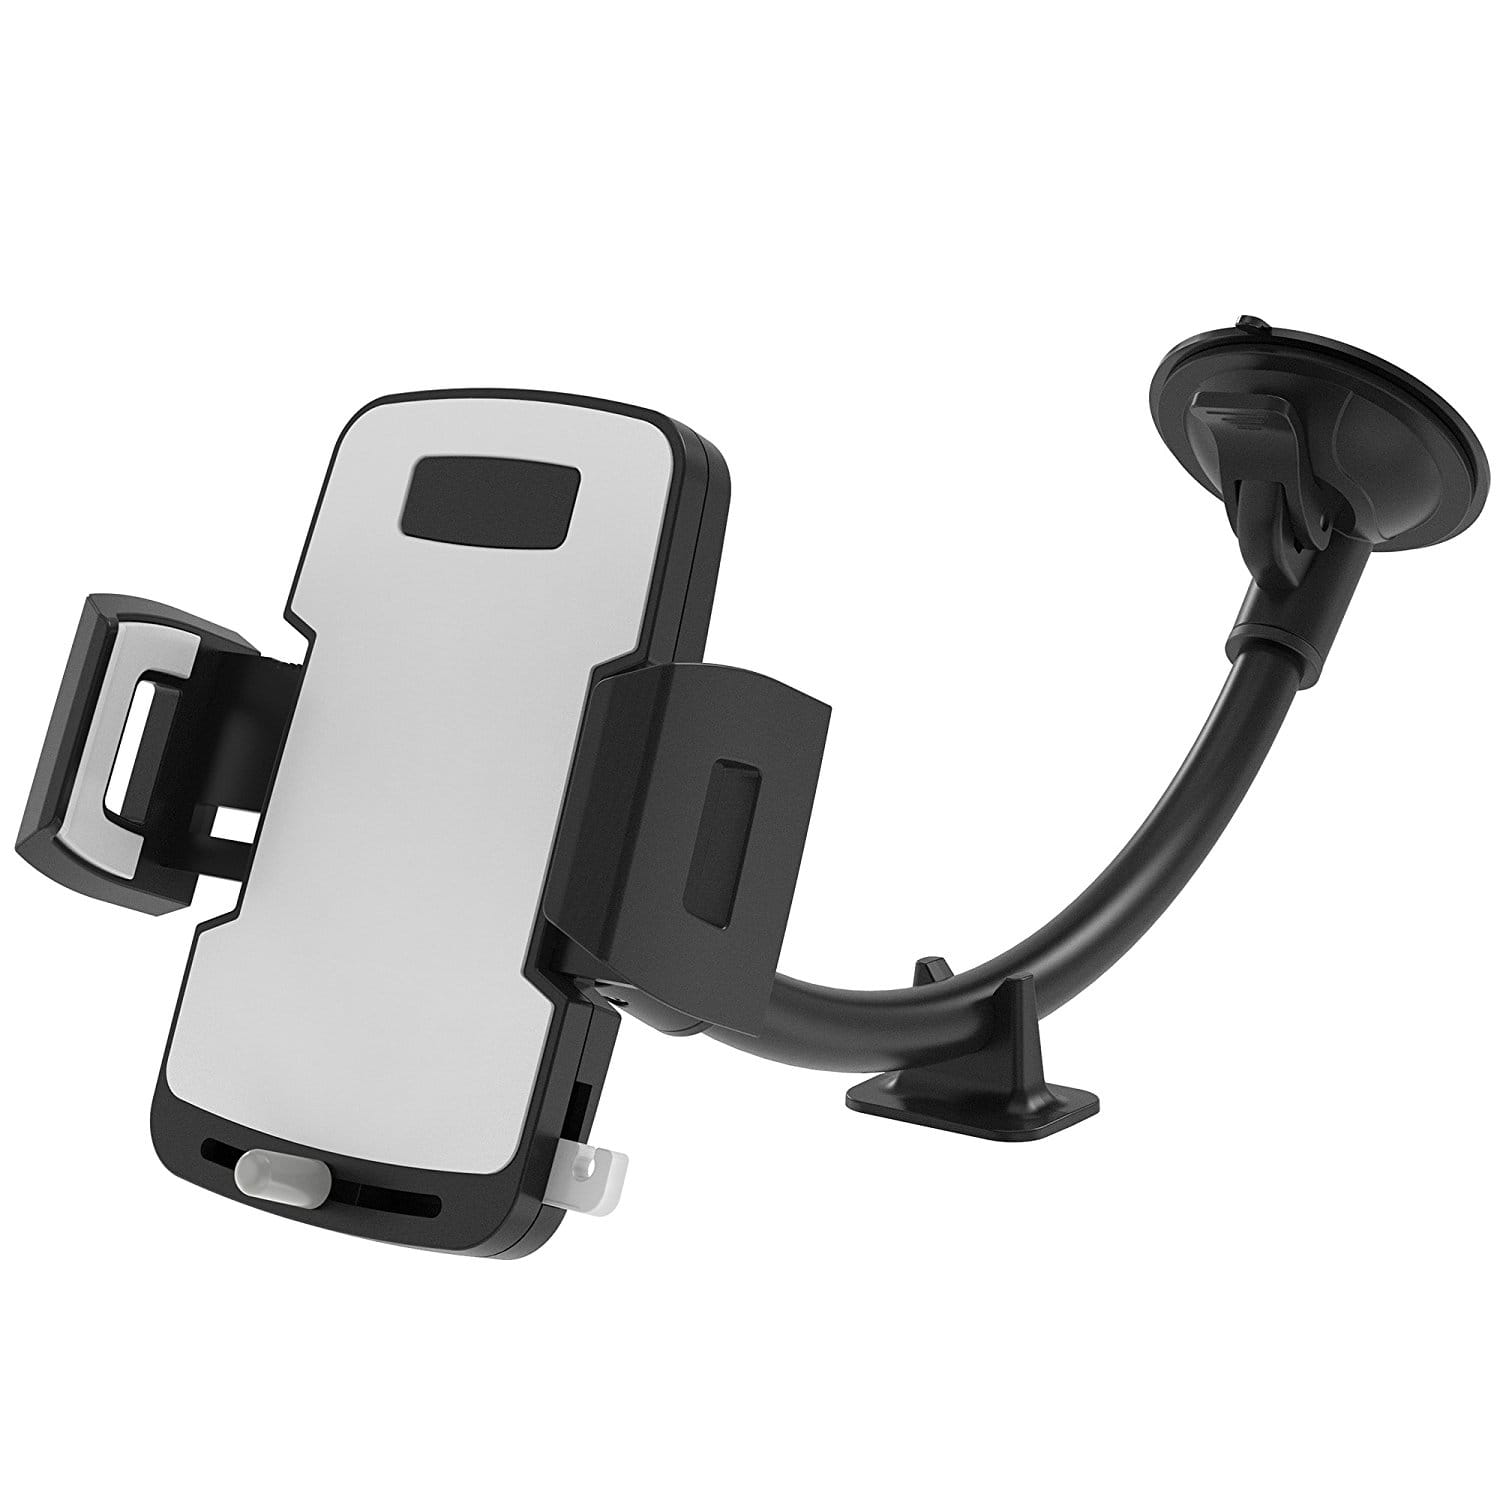 Windshield Long Arm Car Phone Mount with Stabilizer and Release Button $6.99+Free shipping w/Prime